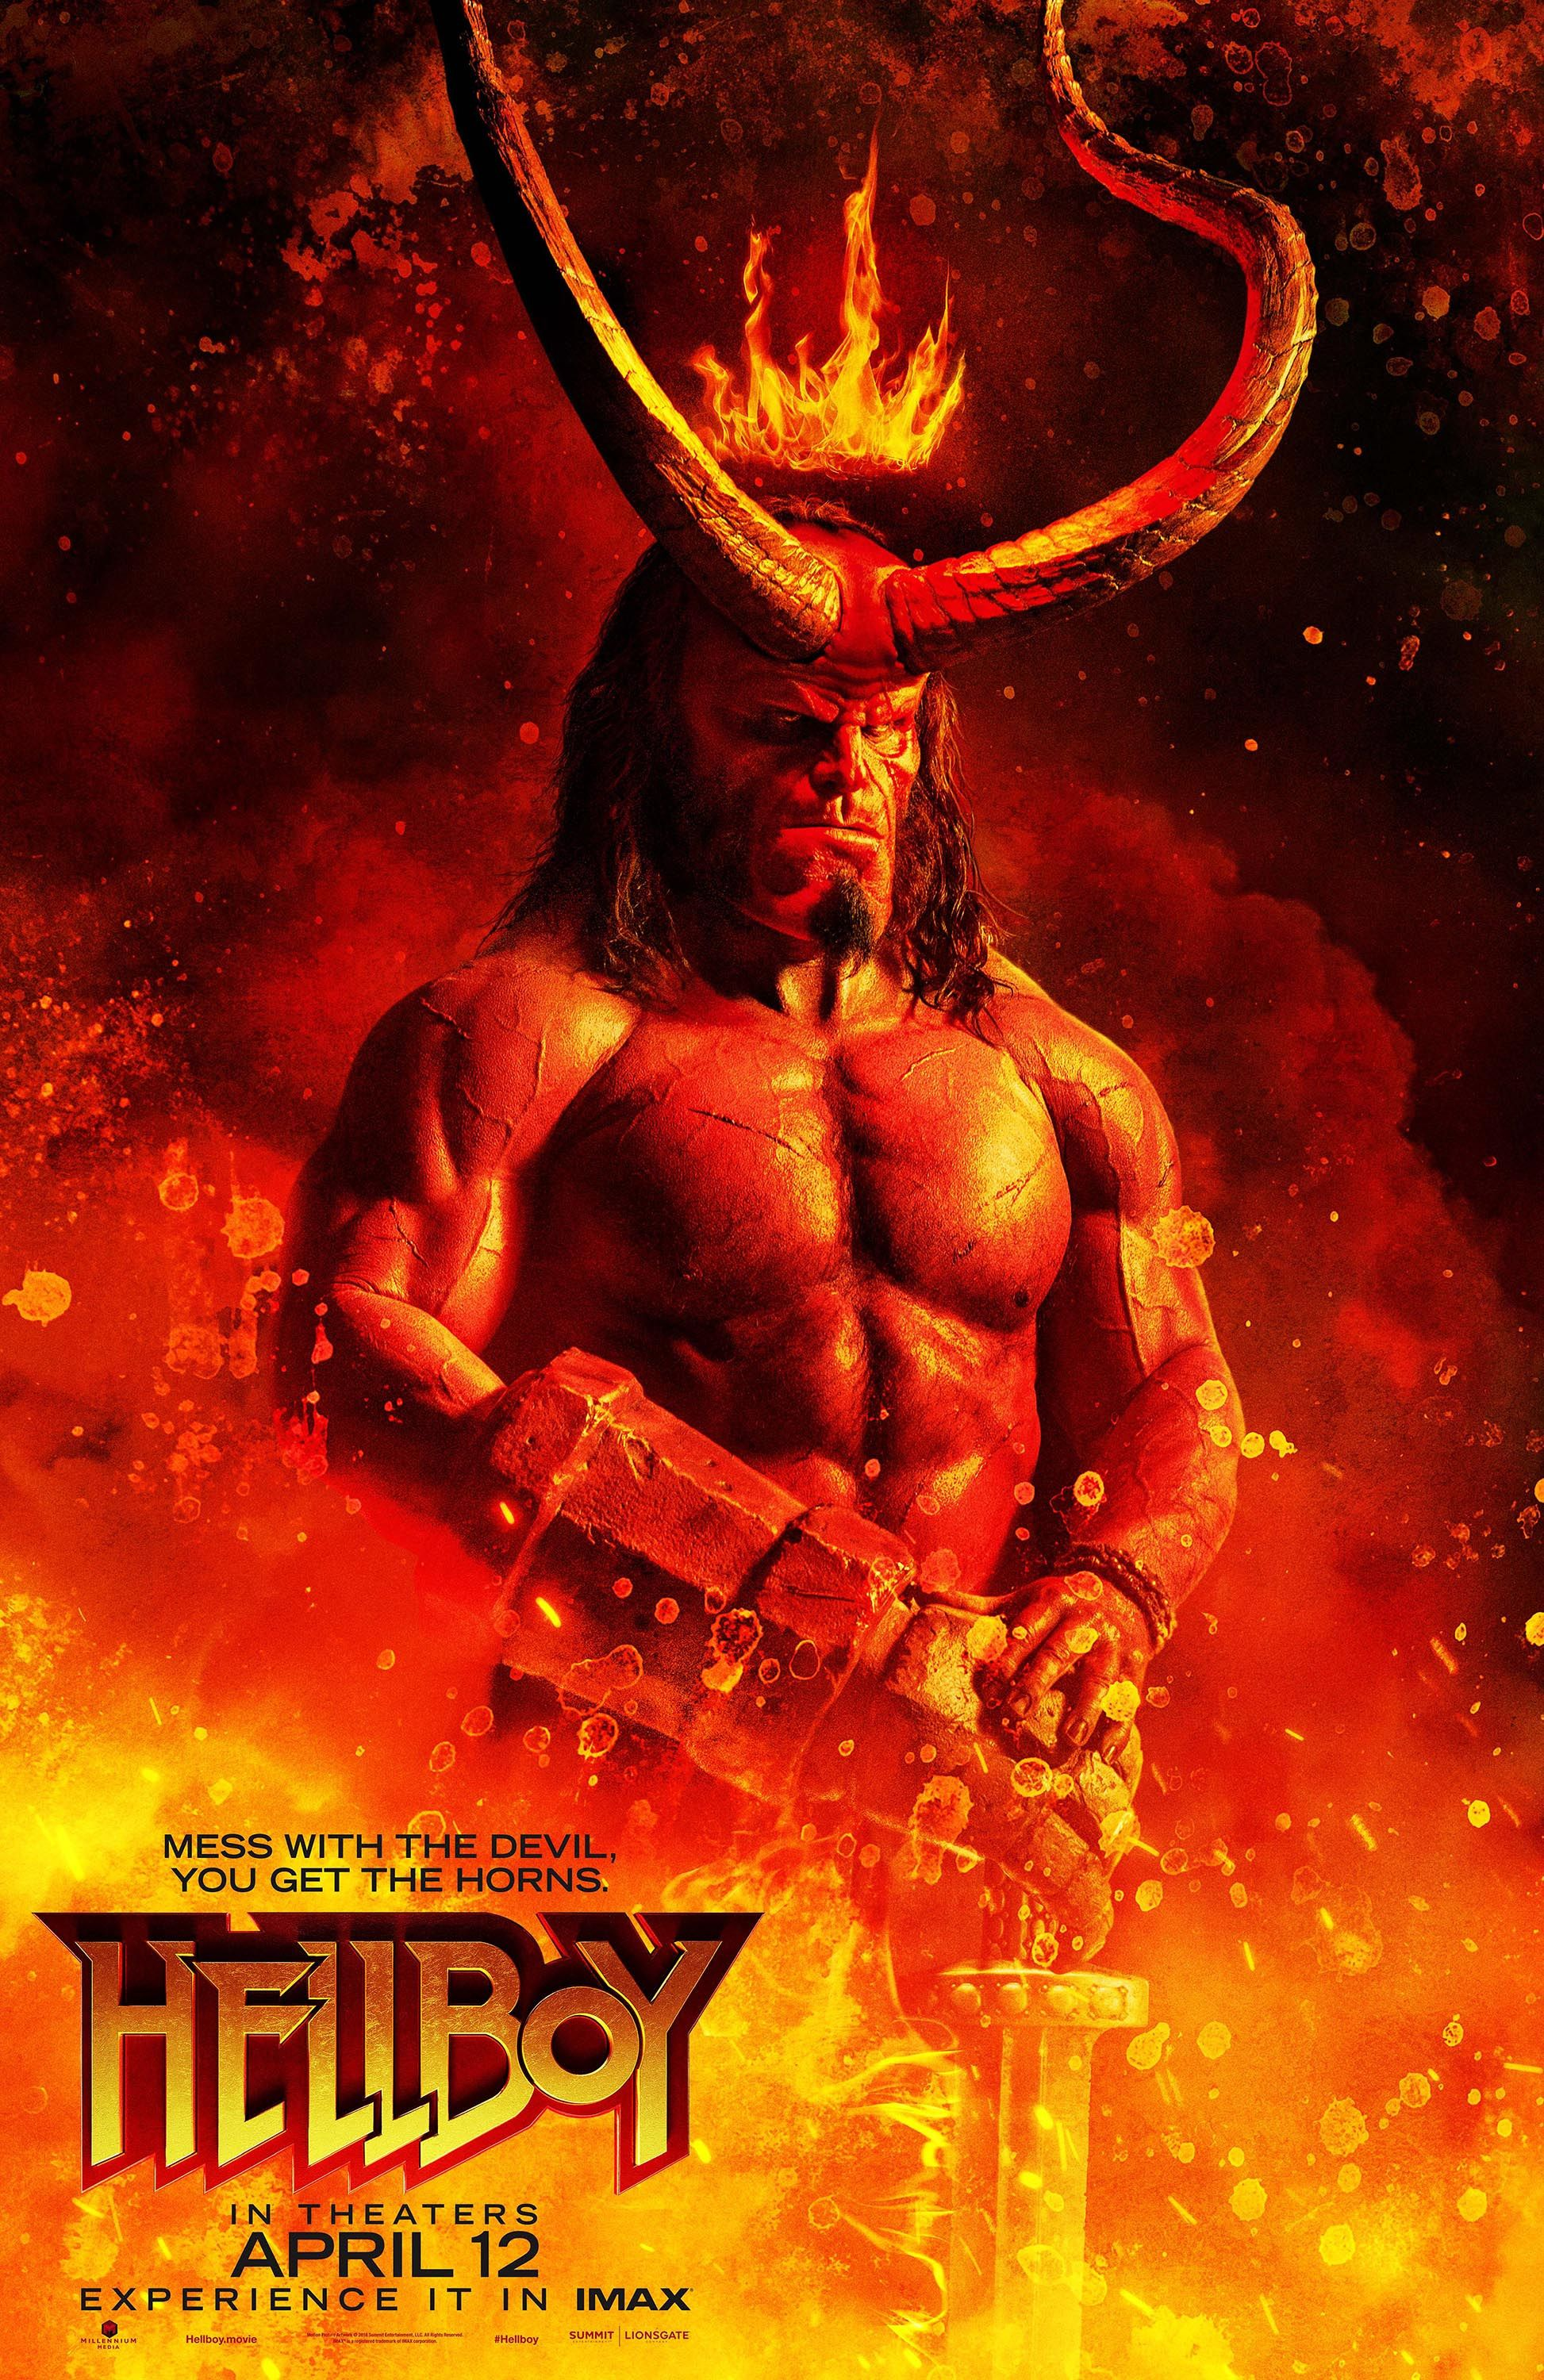 Hellboy (2019) | Hellboy movie